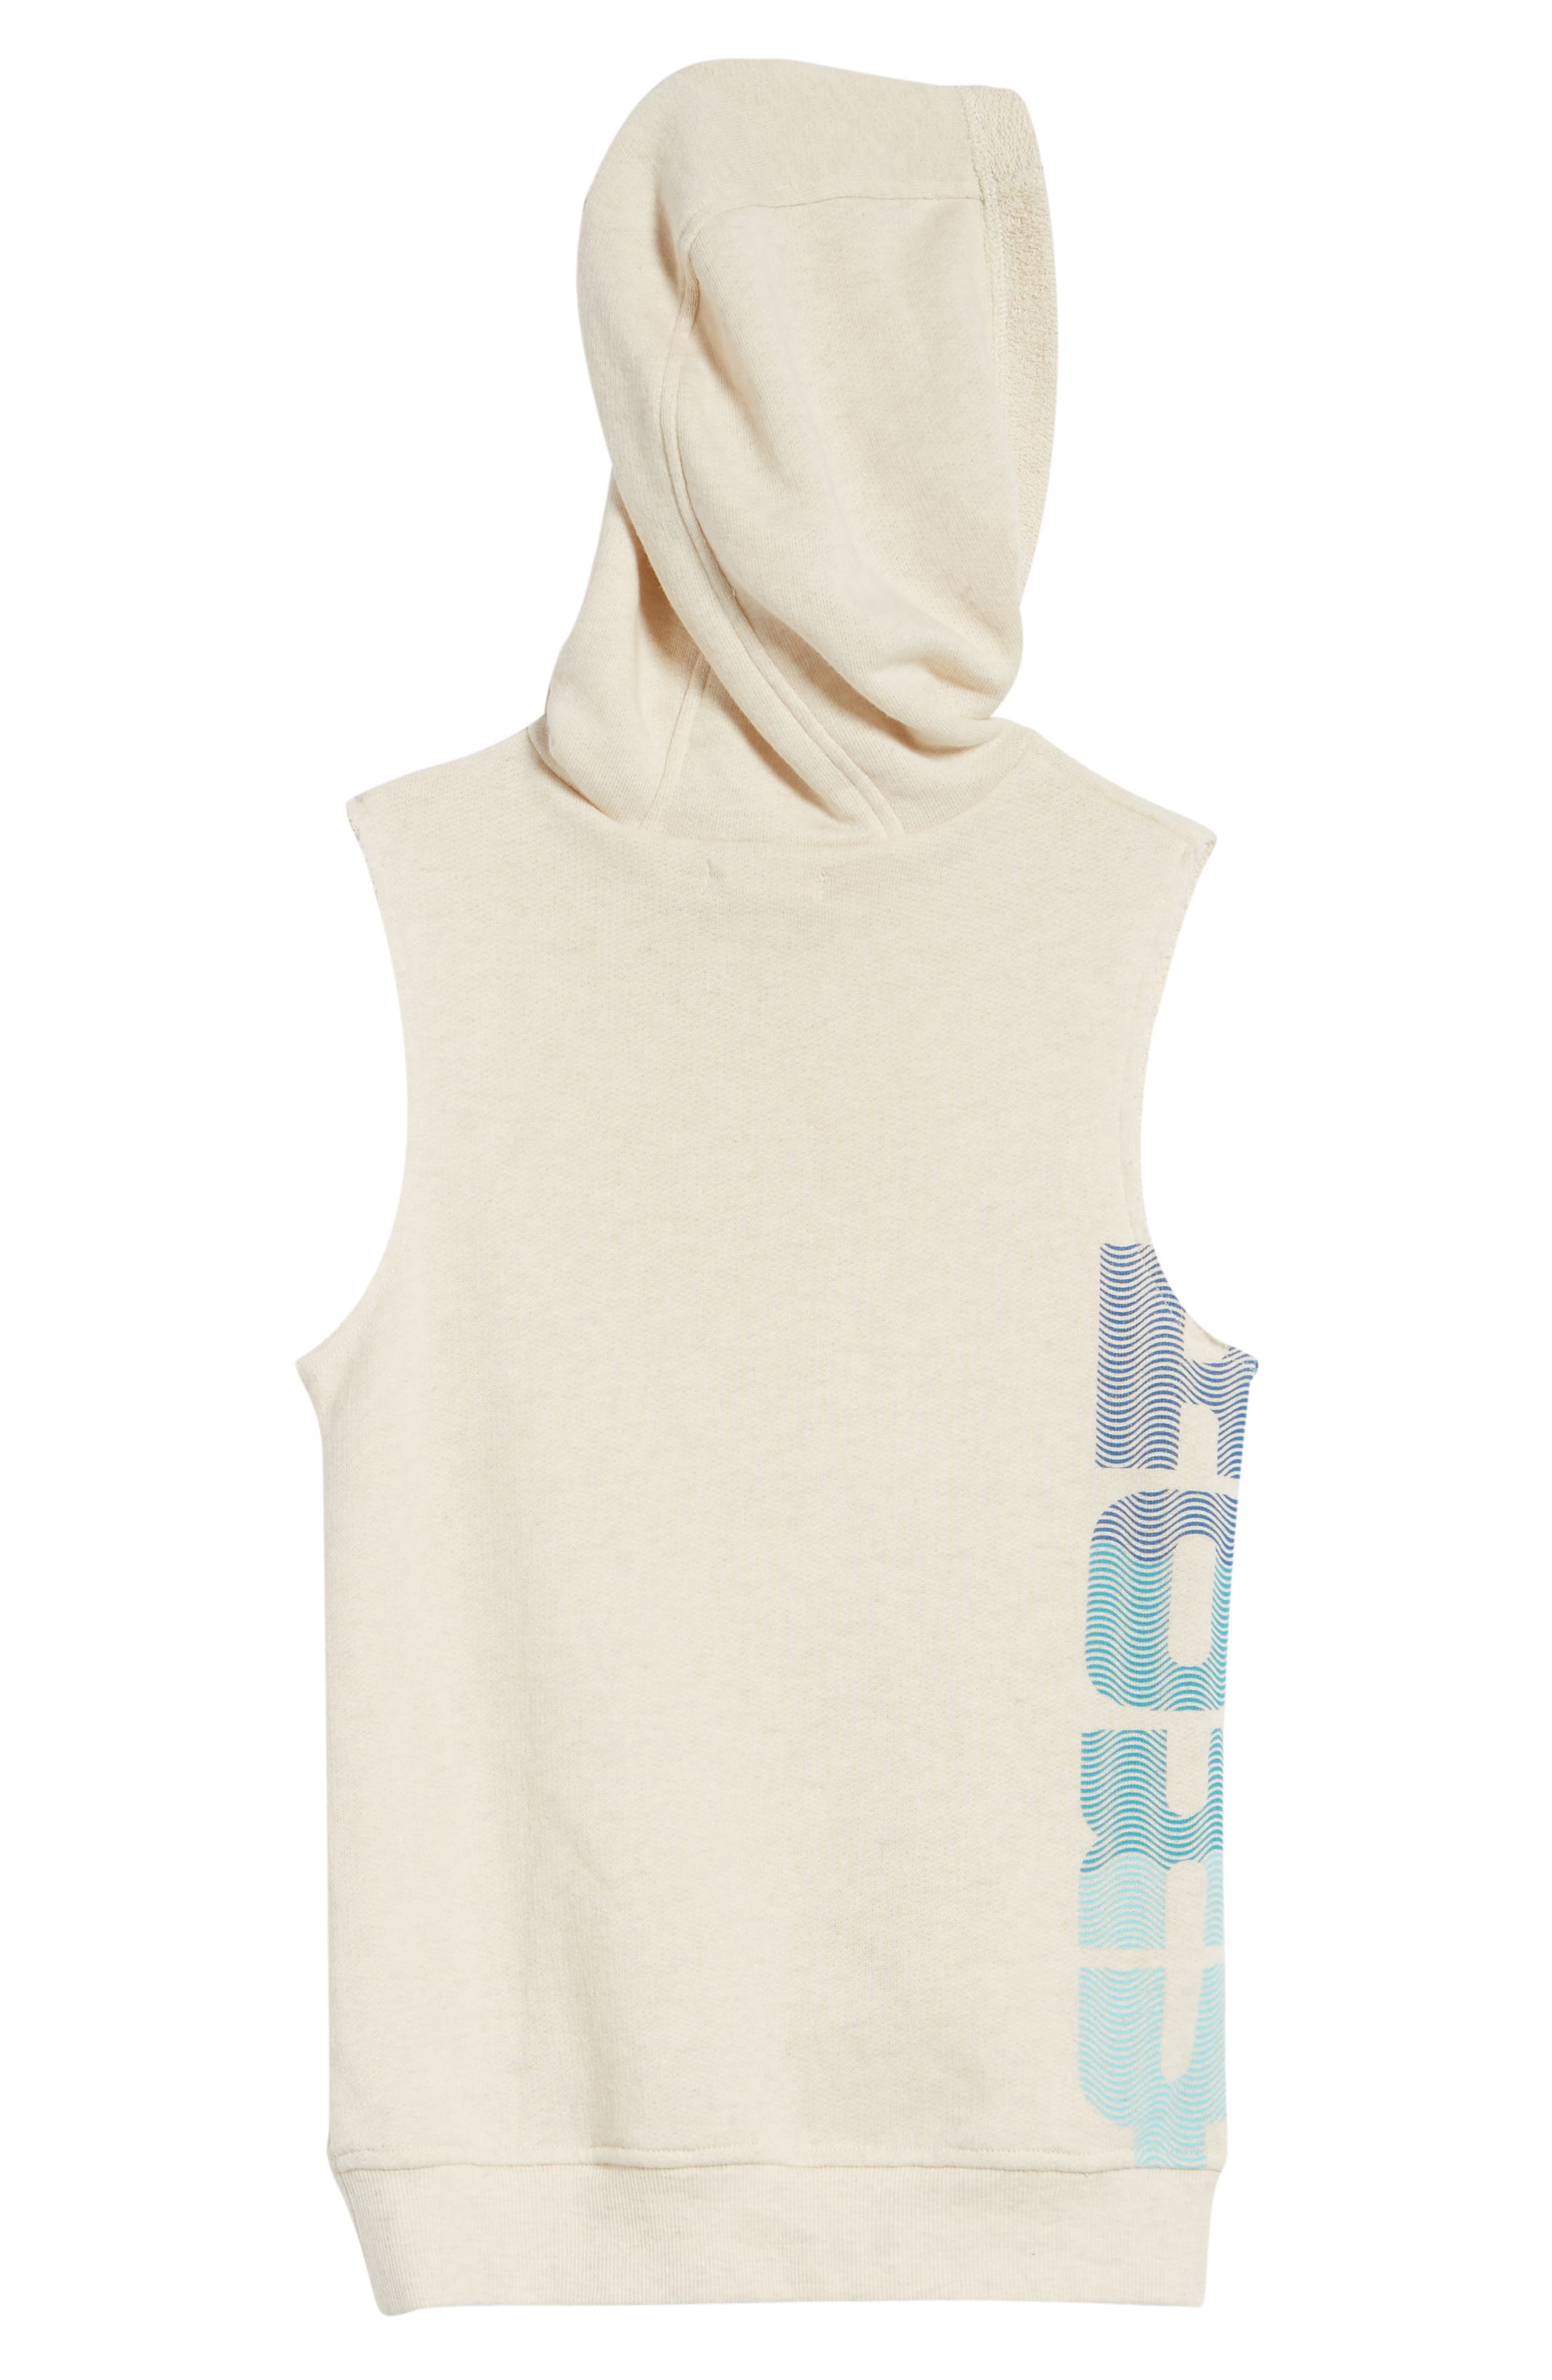 Falling Melody Sleeveless Hoodie,                             Alternate thumbnail 2, color,                             Metro Heather